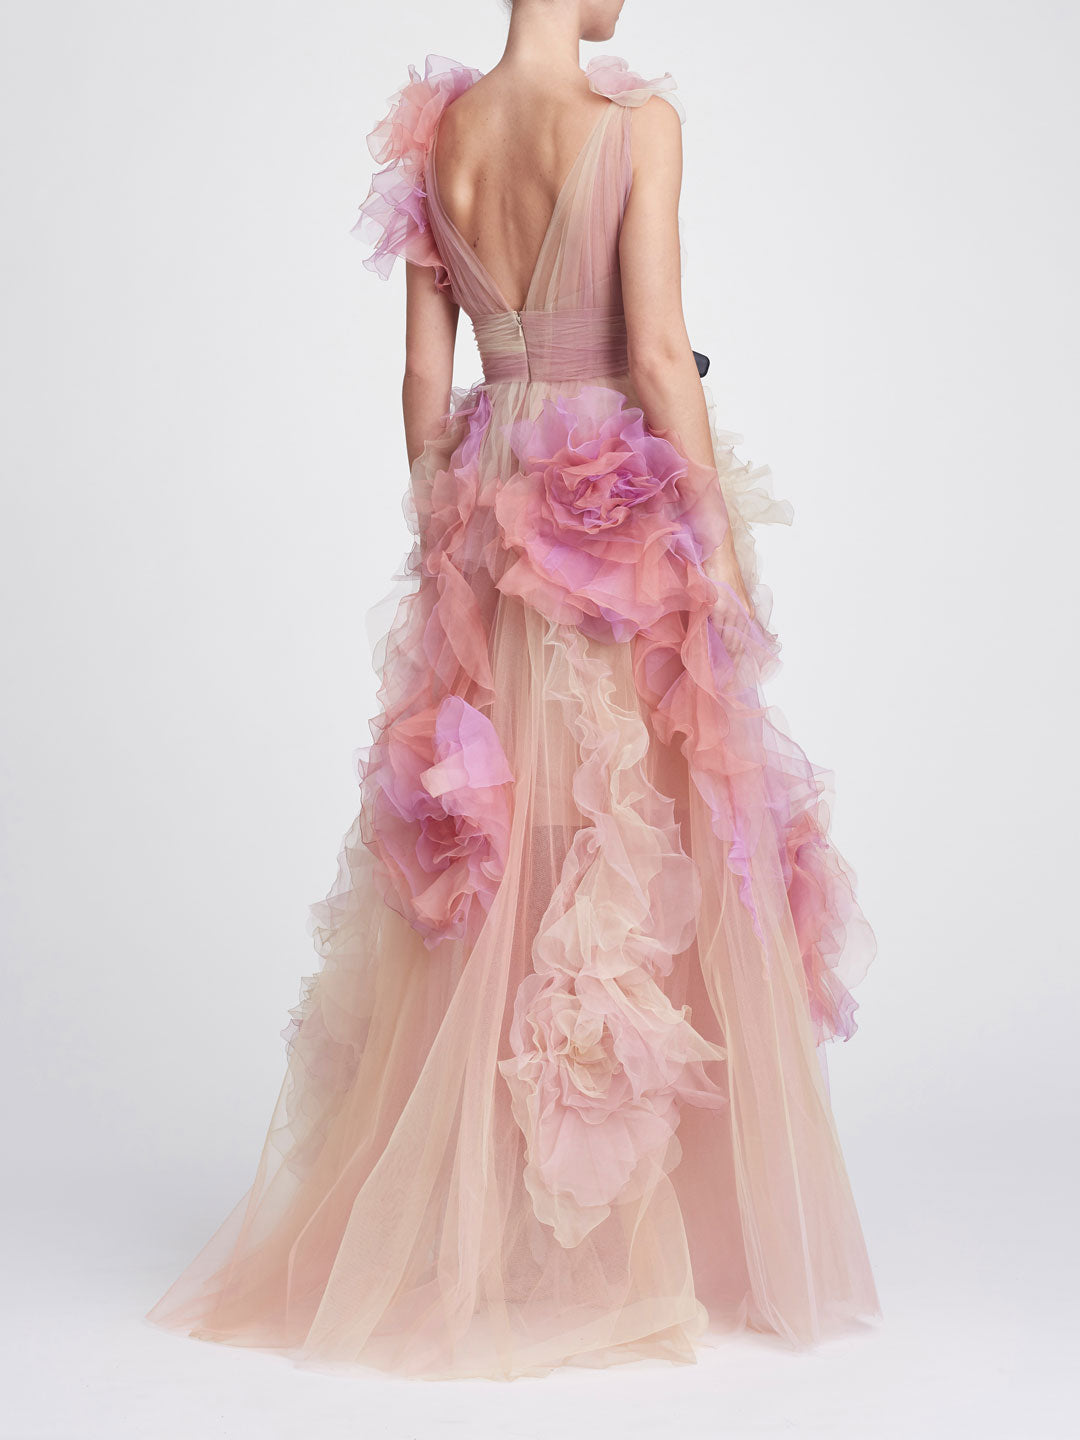 V-neck ballgown with cascading ruffles